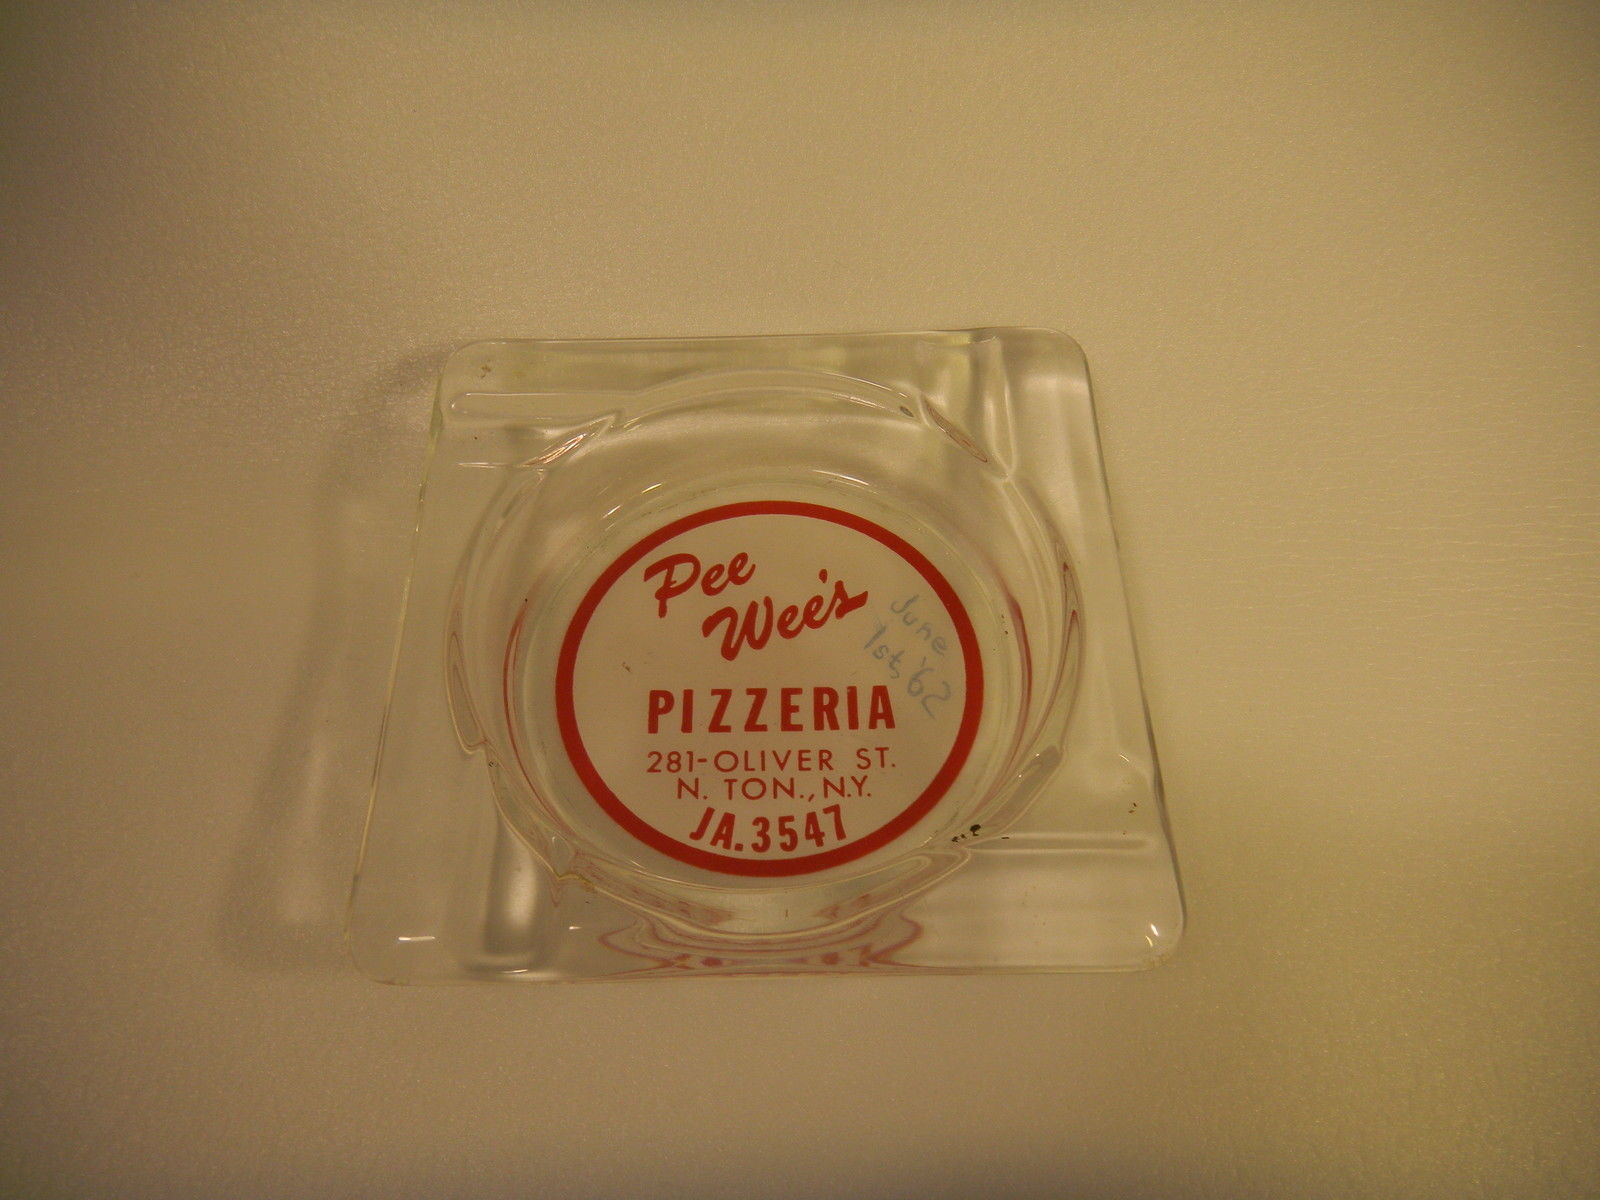 Pee Wee's Pizzeria, 281 Oliver, ashtray (1962-06-01).jpg